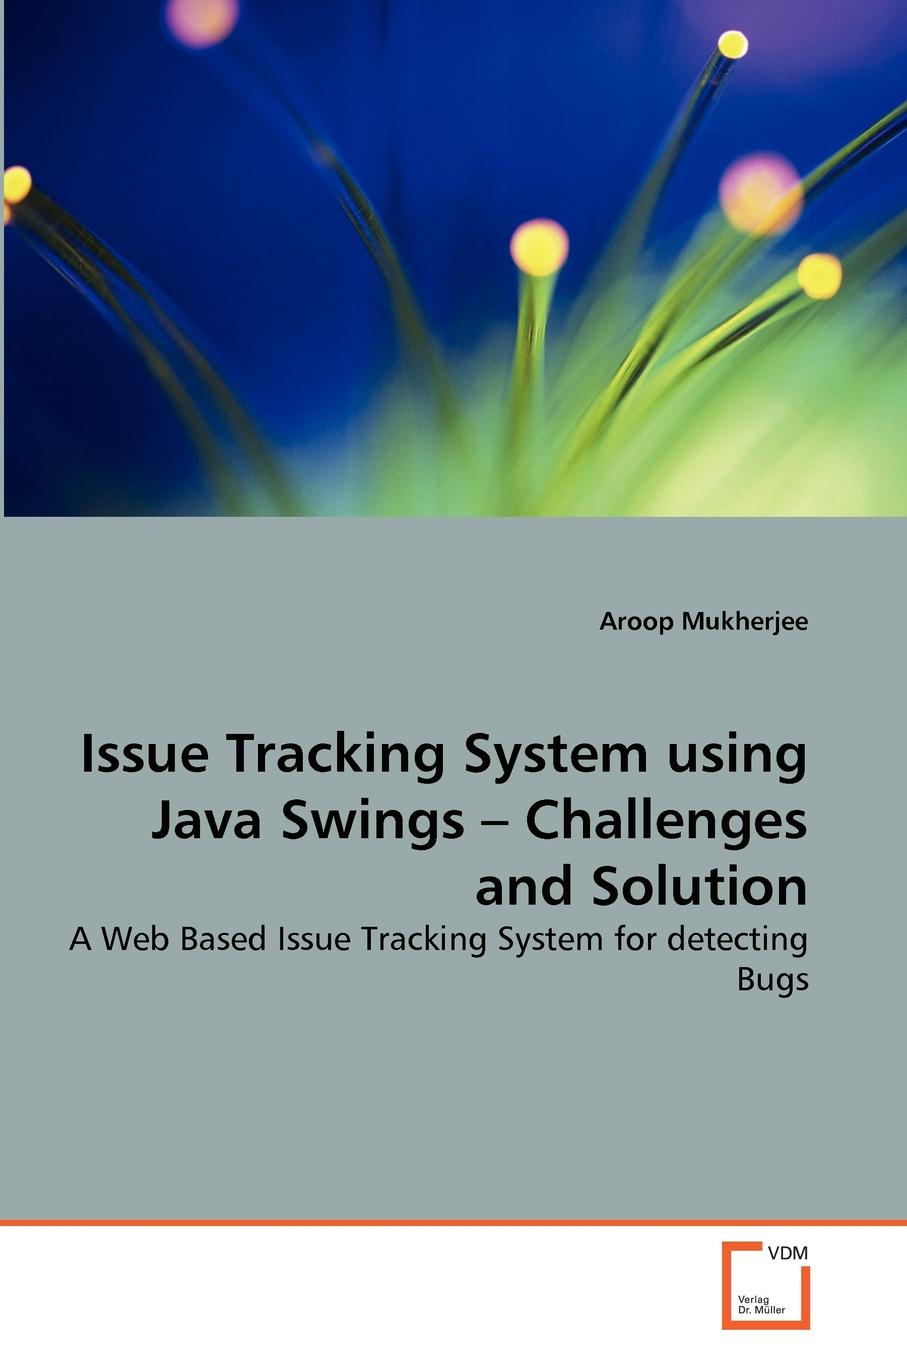 Aroop Mukherjee Issue Tracking System using Java Swings - Challenges and Solution